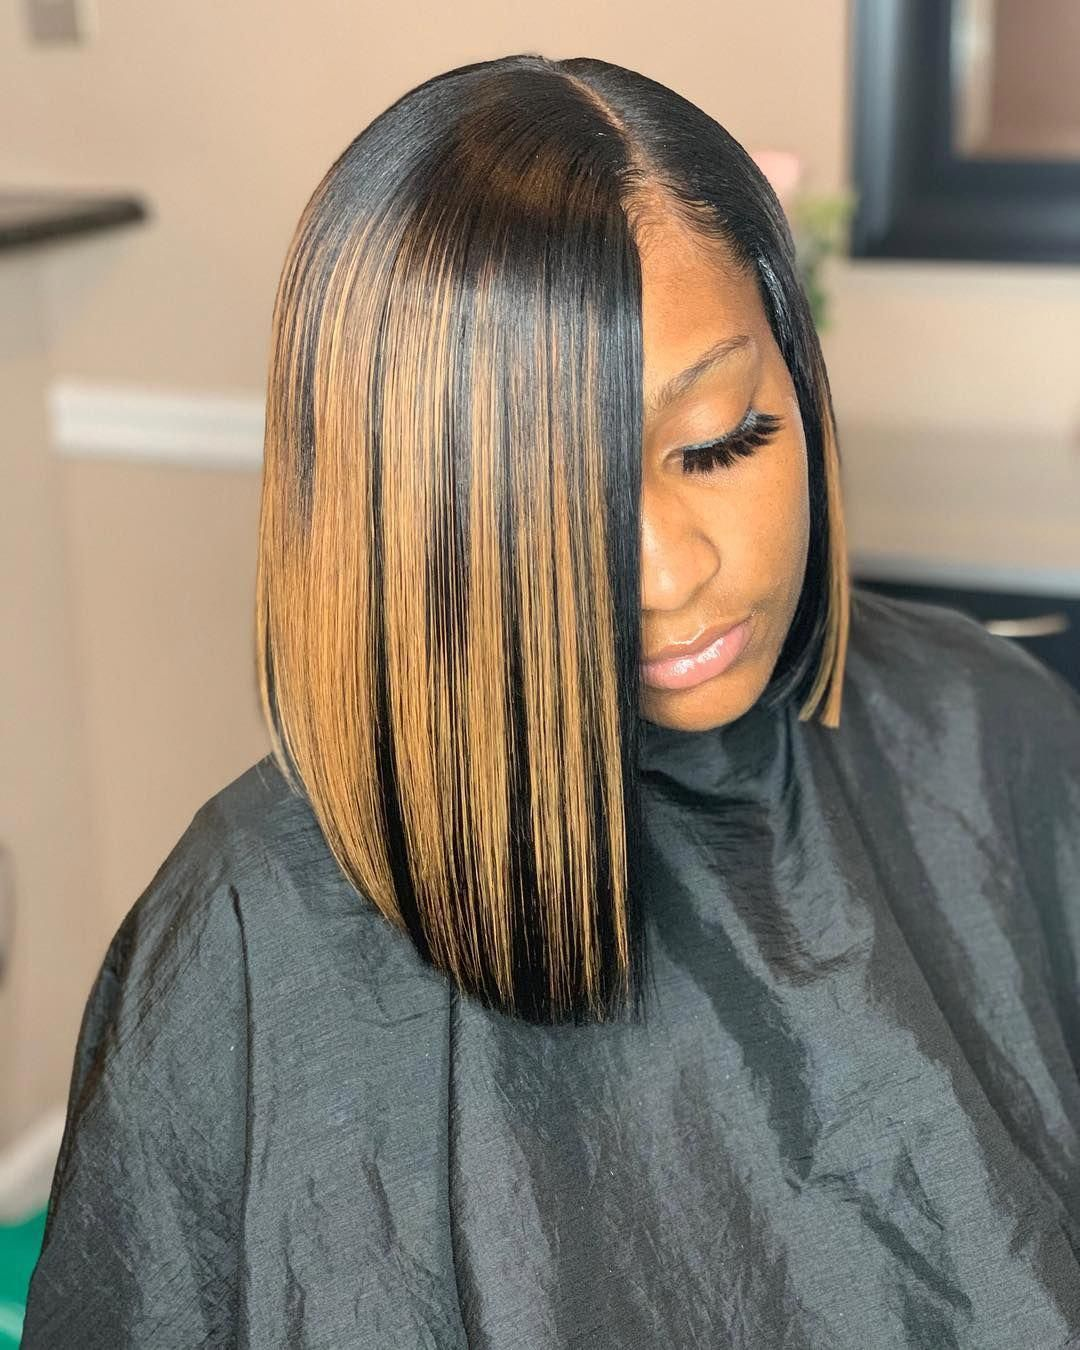 Rich Hair By Rivearra On Instagram It S About That Season Quick Weave Leave Out Quick Weave Hairstyles Quick Weave Hairstyles Bobs Weave Bob Hairstyles